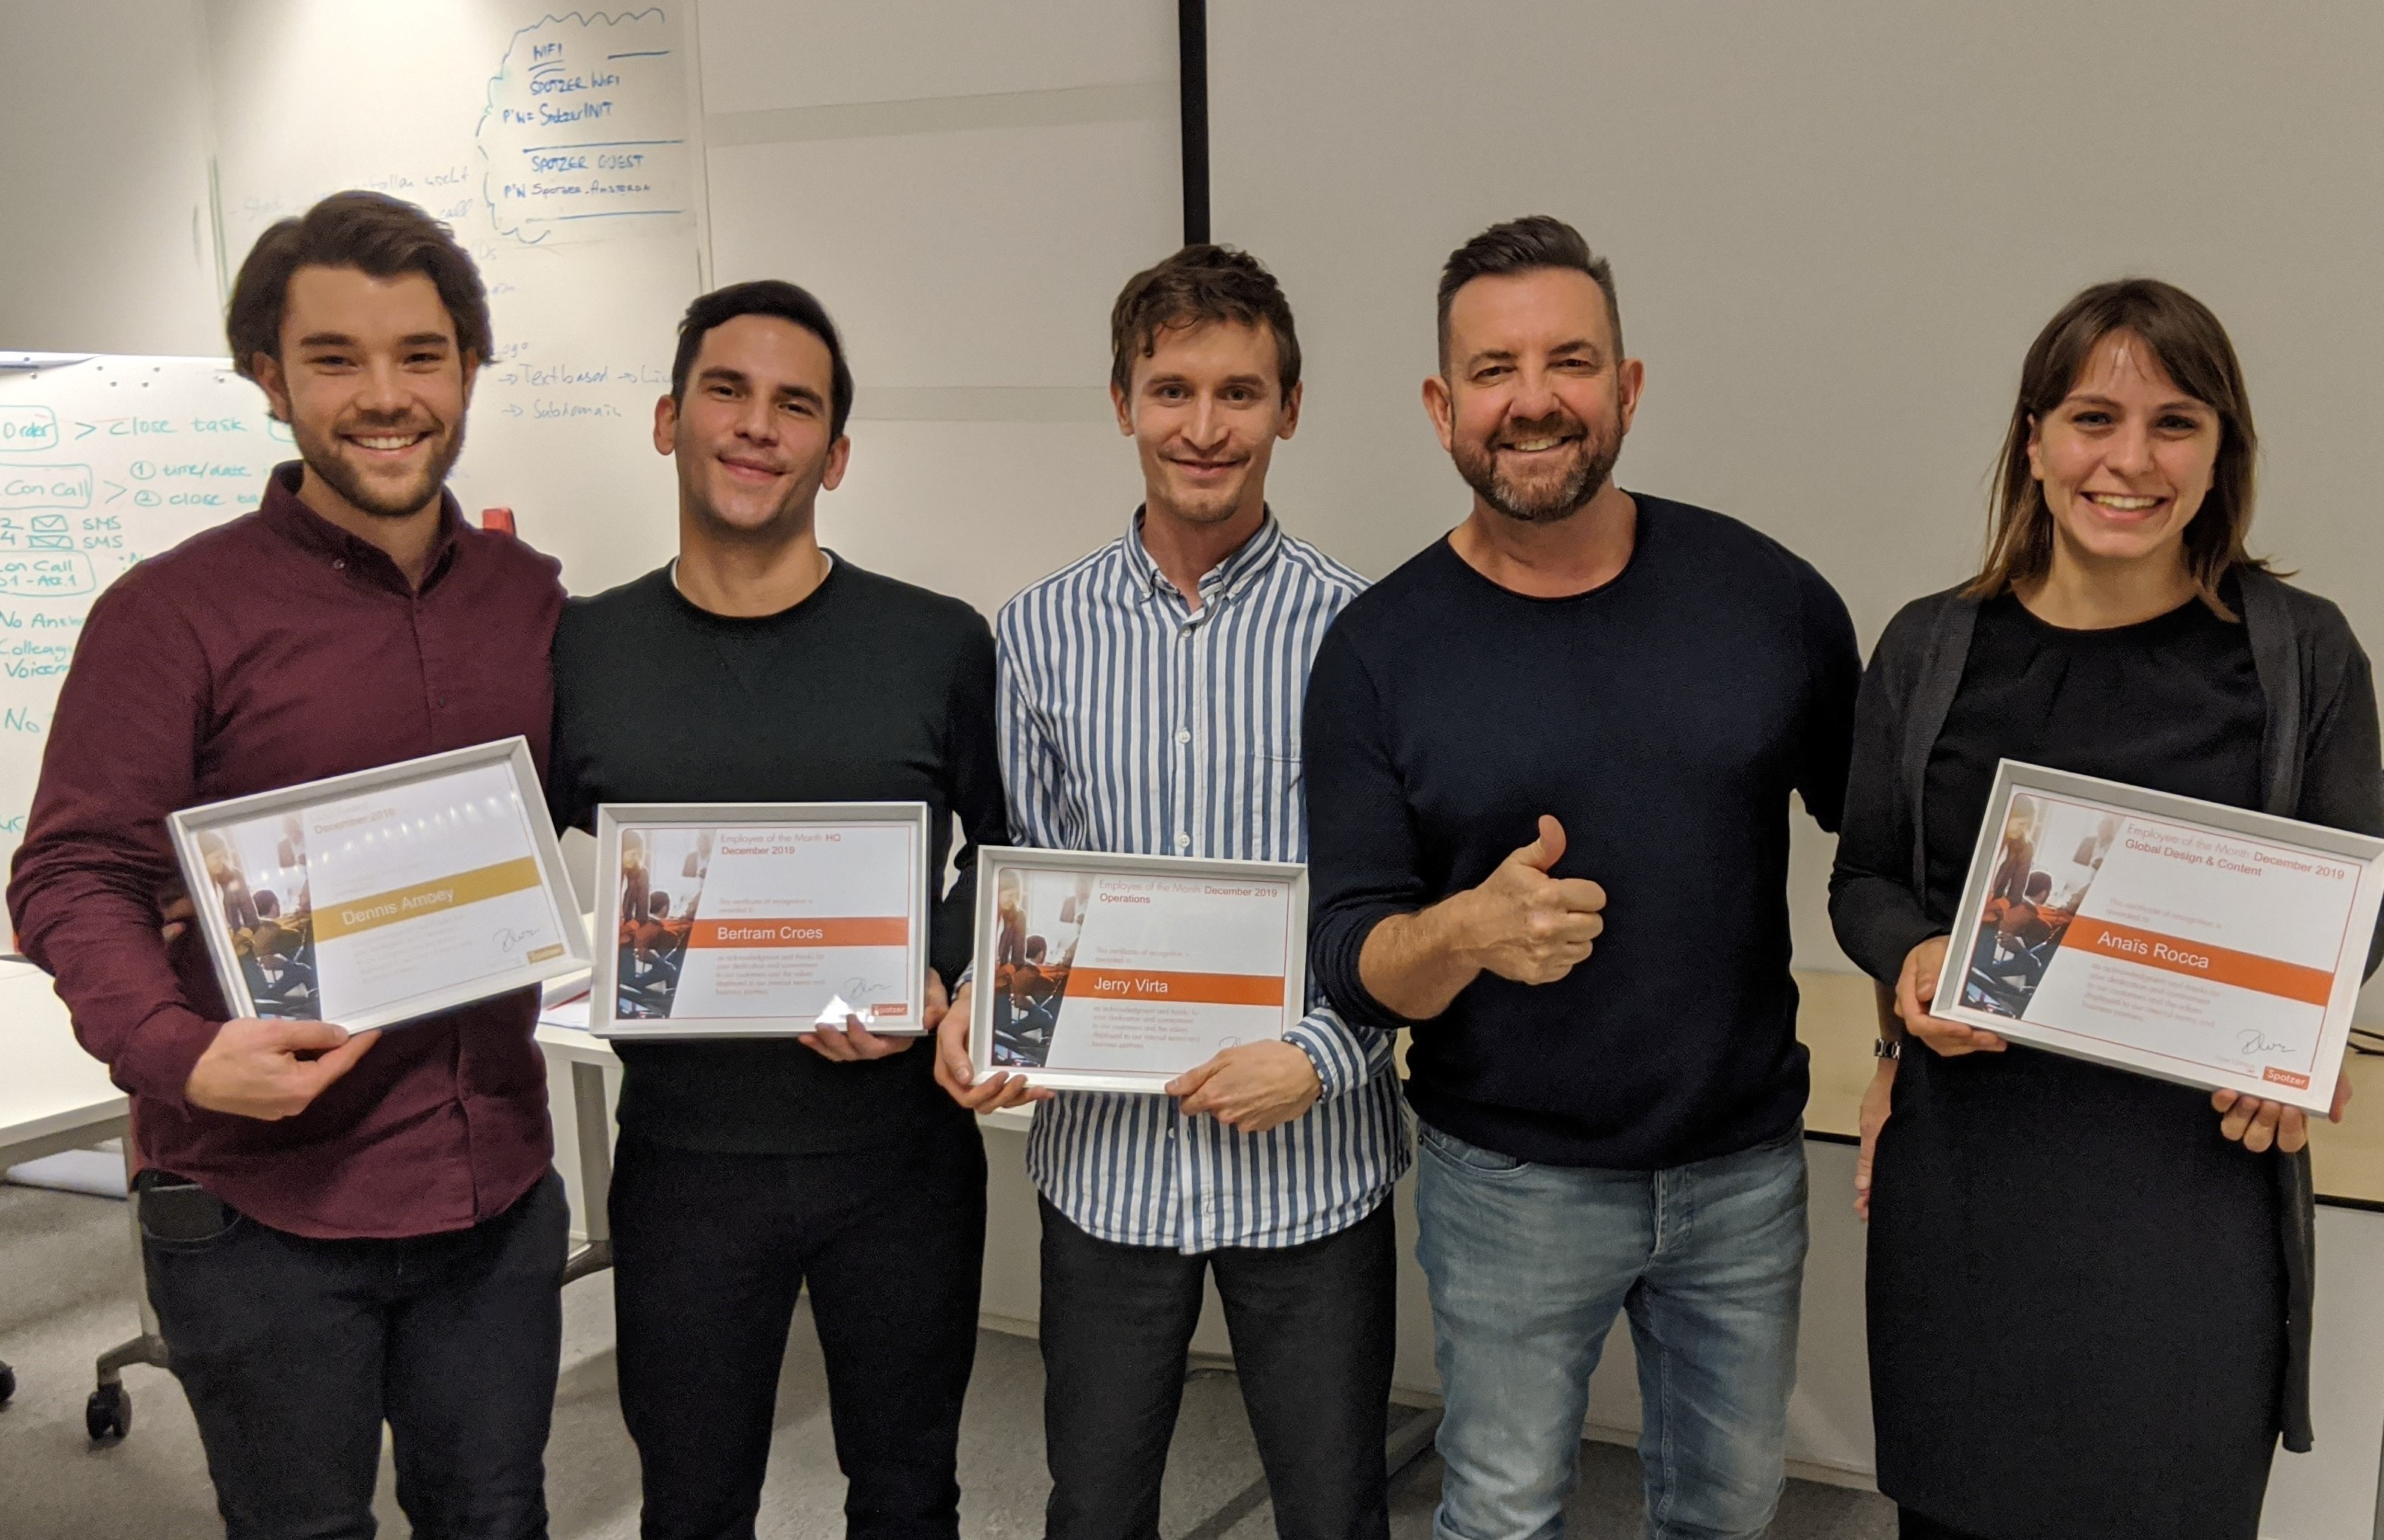 Spotzer employees hold awards at employee of the month event